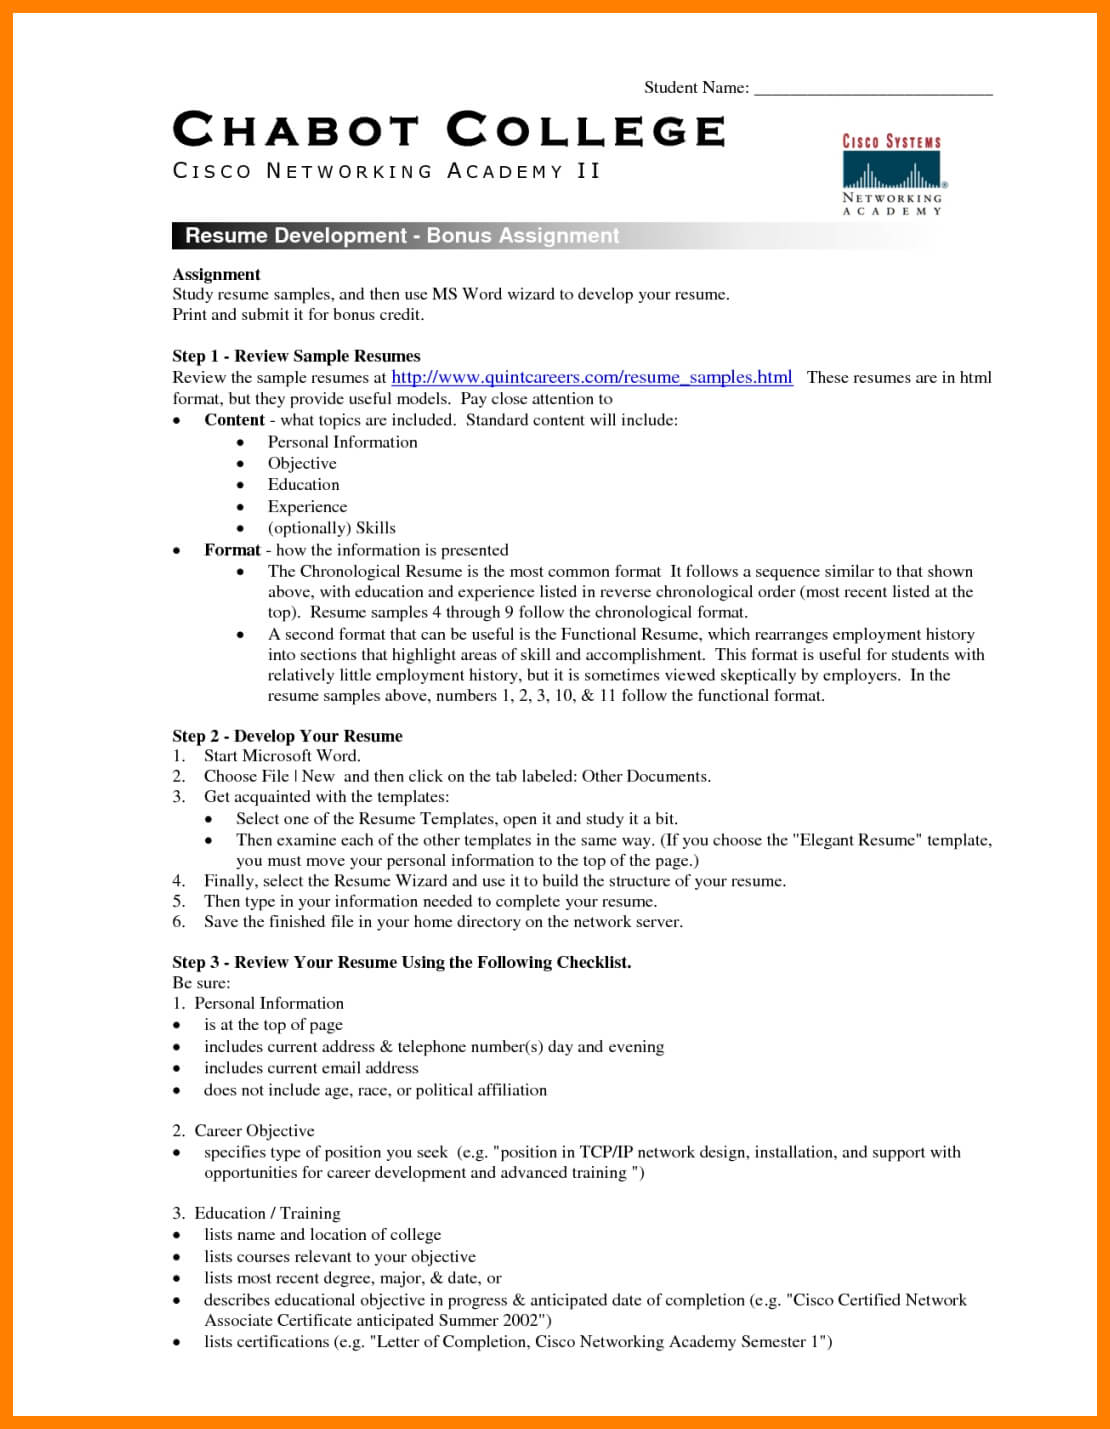 037 Template Ideas Resume Ms Word 1108044 Microsoft Top Within Resume Templates Word 2013